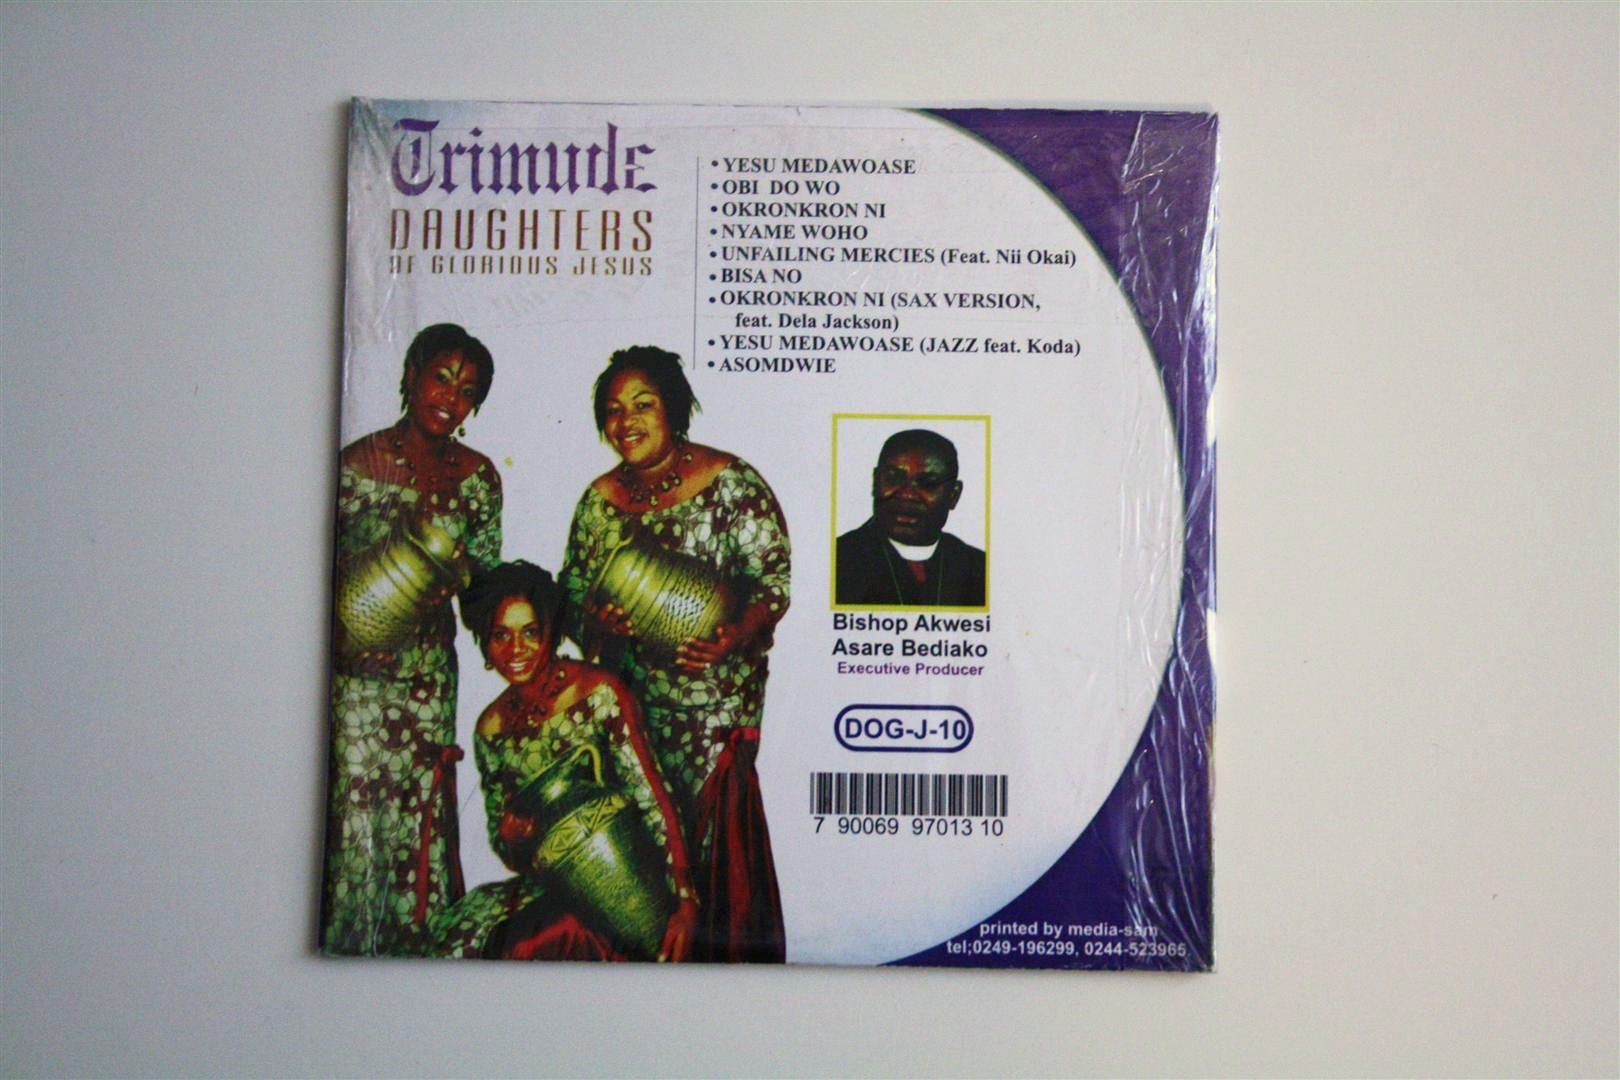 Christian Cd From Ghana / Trimude Daughters of Glorious Jesus / 9 Songs